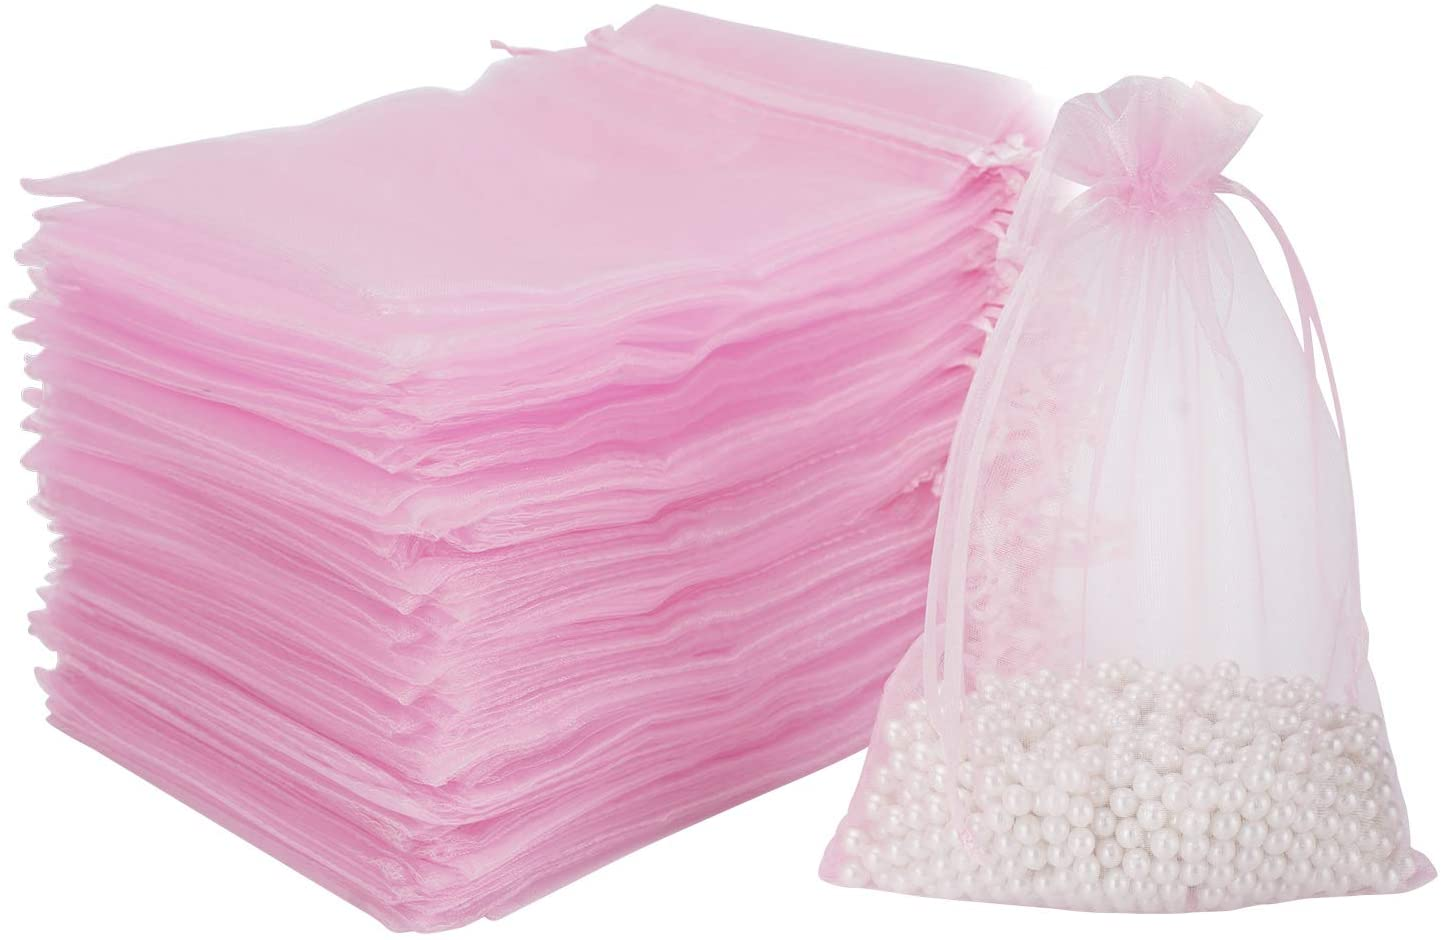 Organza Sheer Drawstring Present Bags, EUSOAR 100pcs 4 x 6 Soap Bags, Gift Present Pouches, Cosmetics and Jewelry Pearl Bags, Party Holiday Favor Bags-Pink